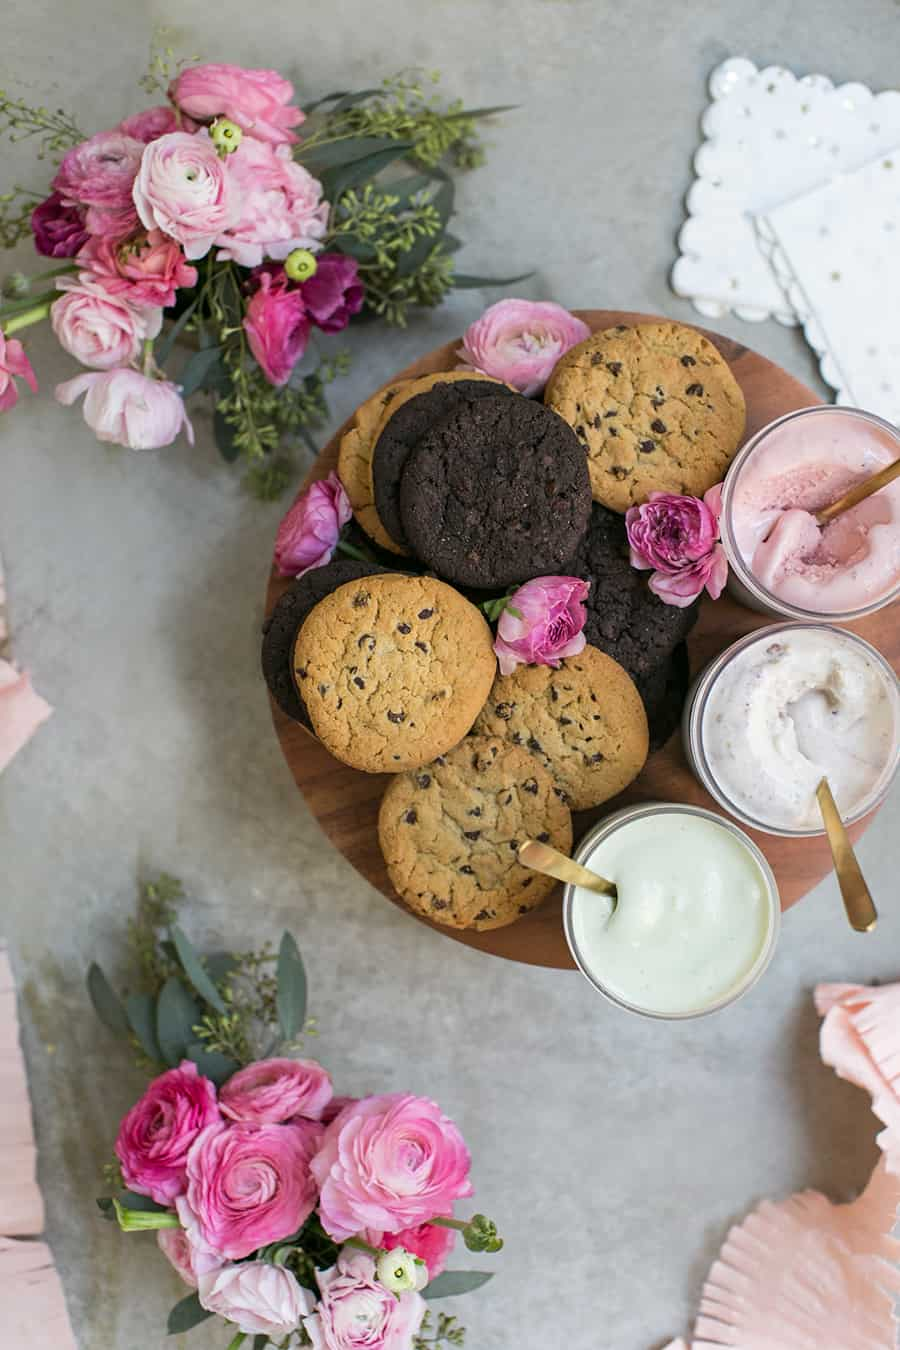 Cookies and ice cream on a platter for a Valentine's Day party